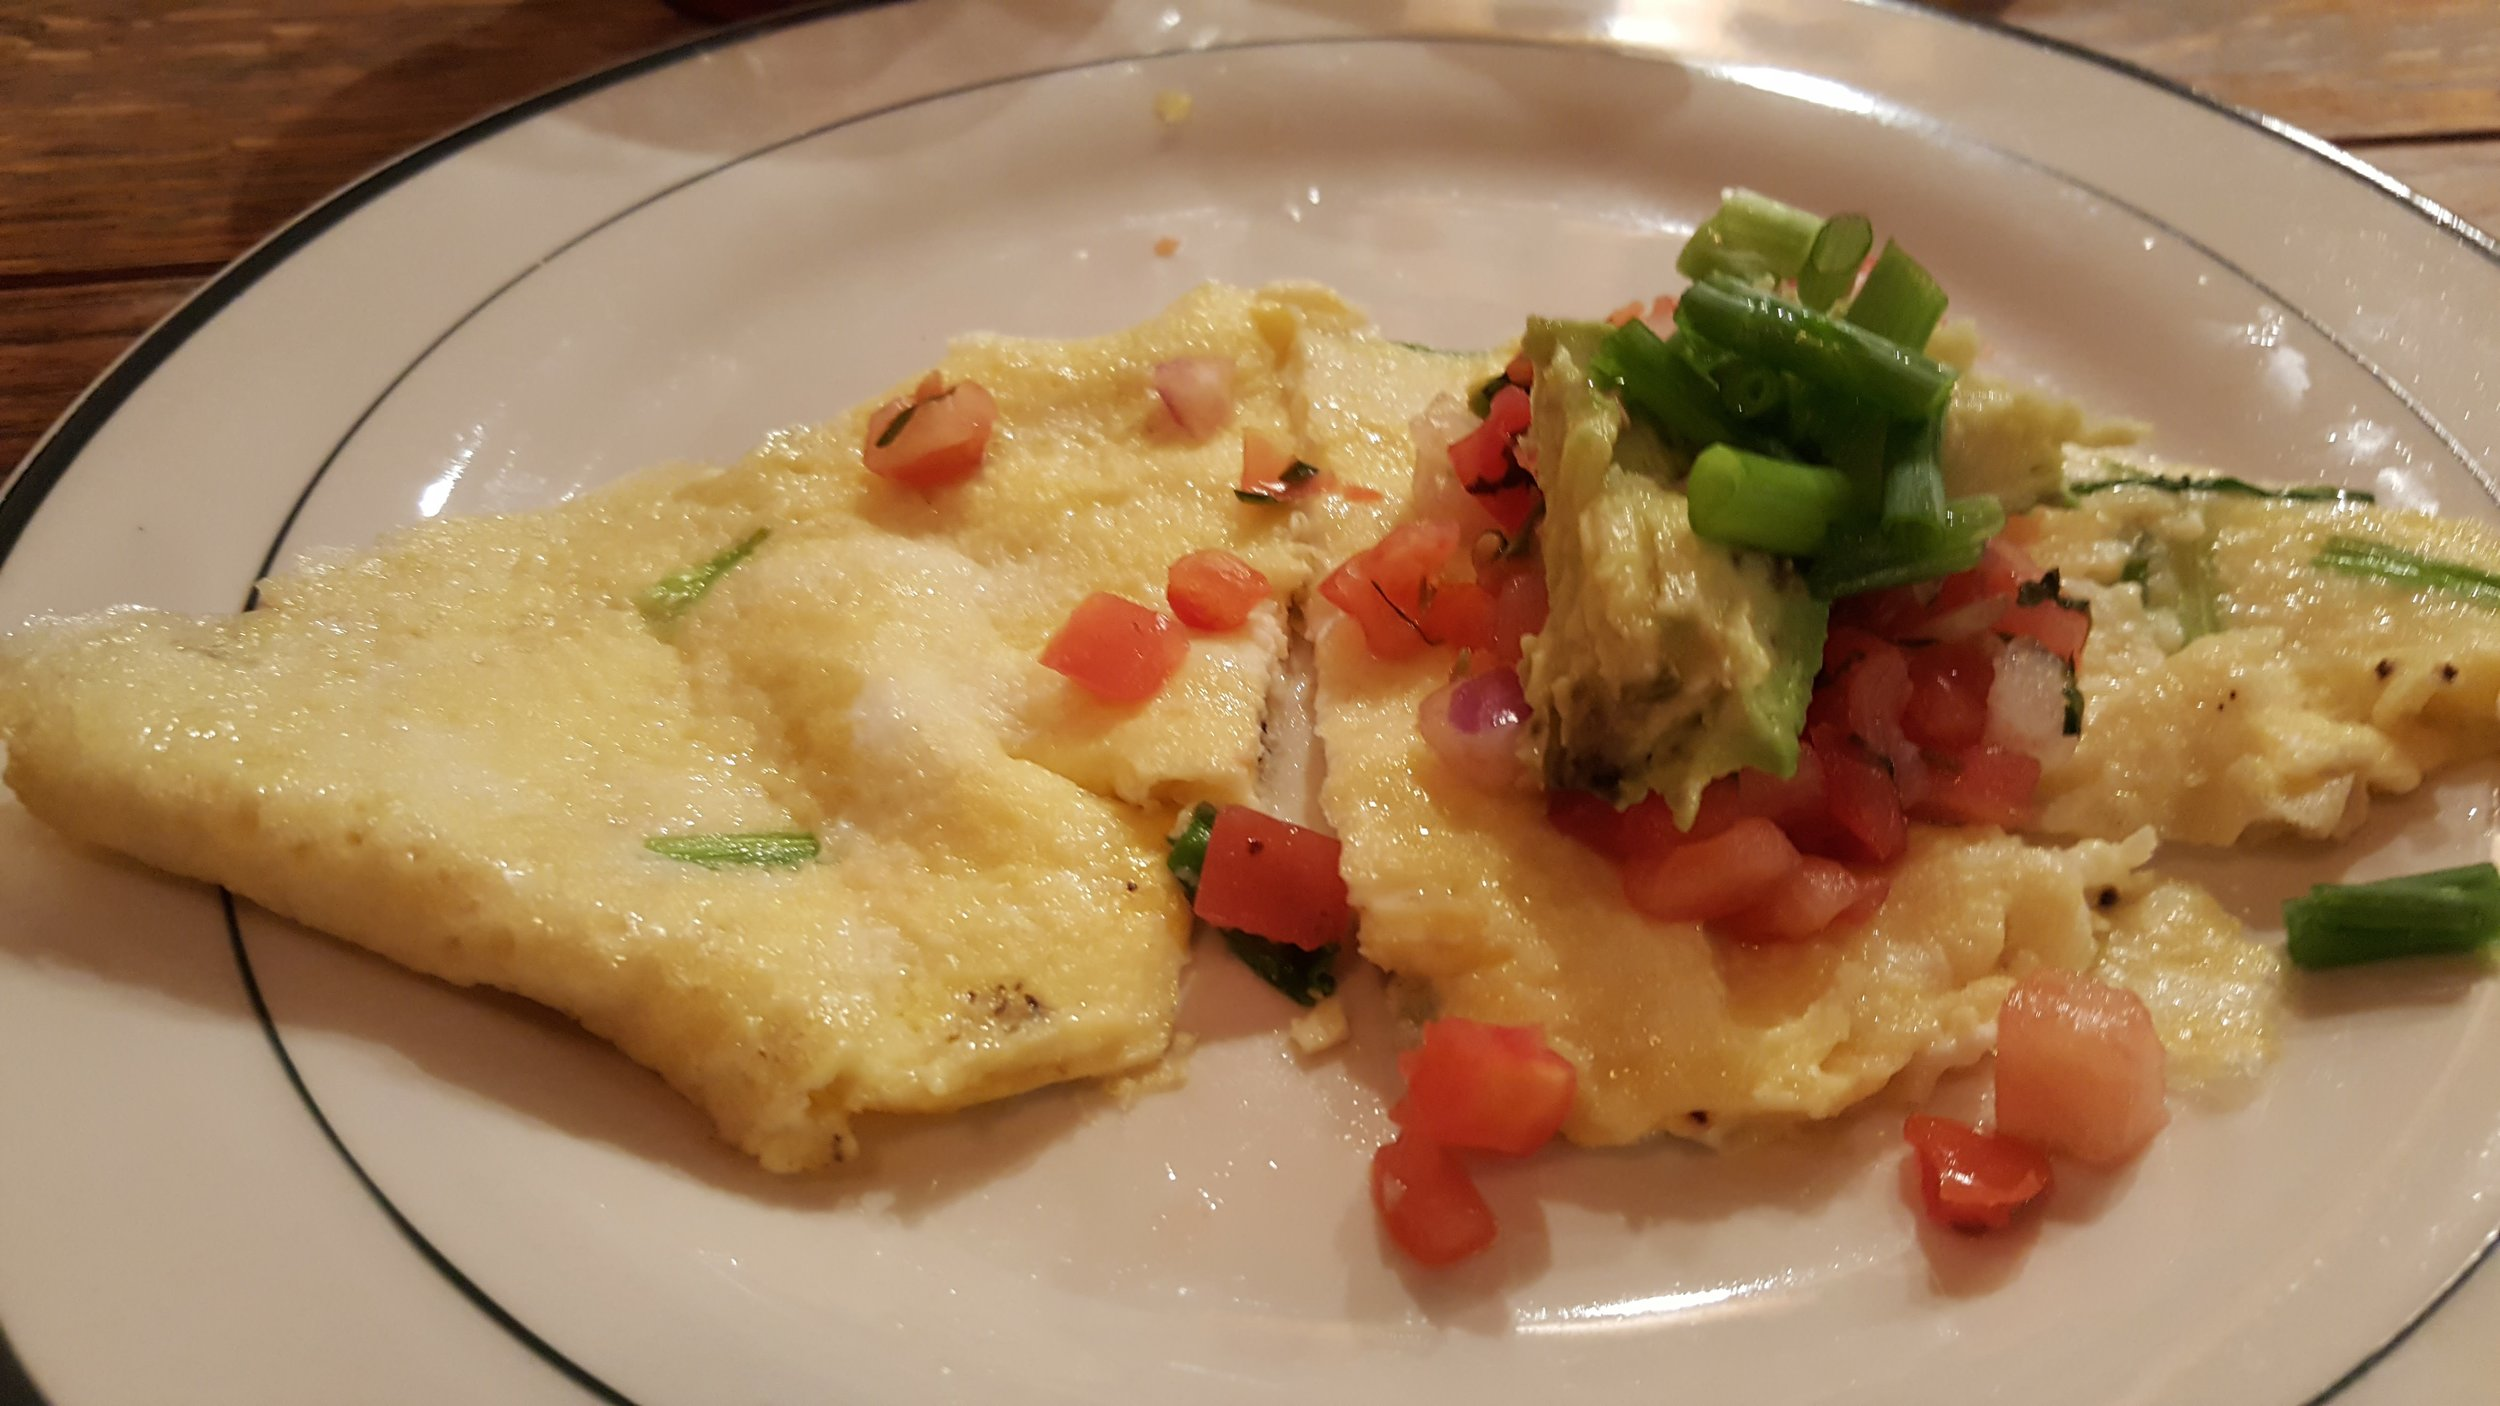 Omelette with salsa – I would wrap the omelette around the salsa like a burrito